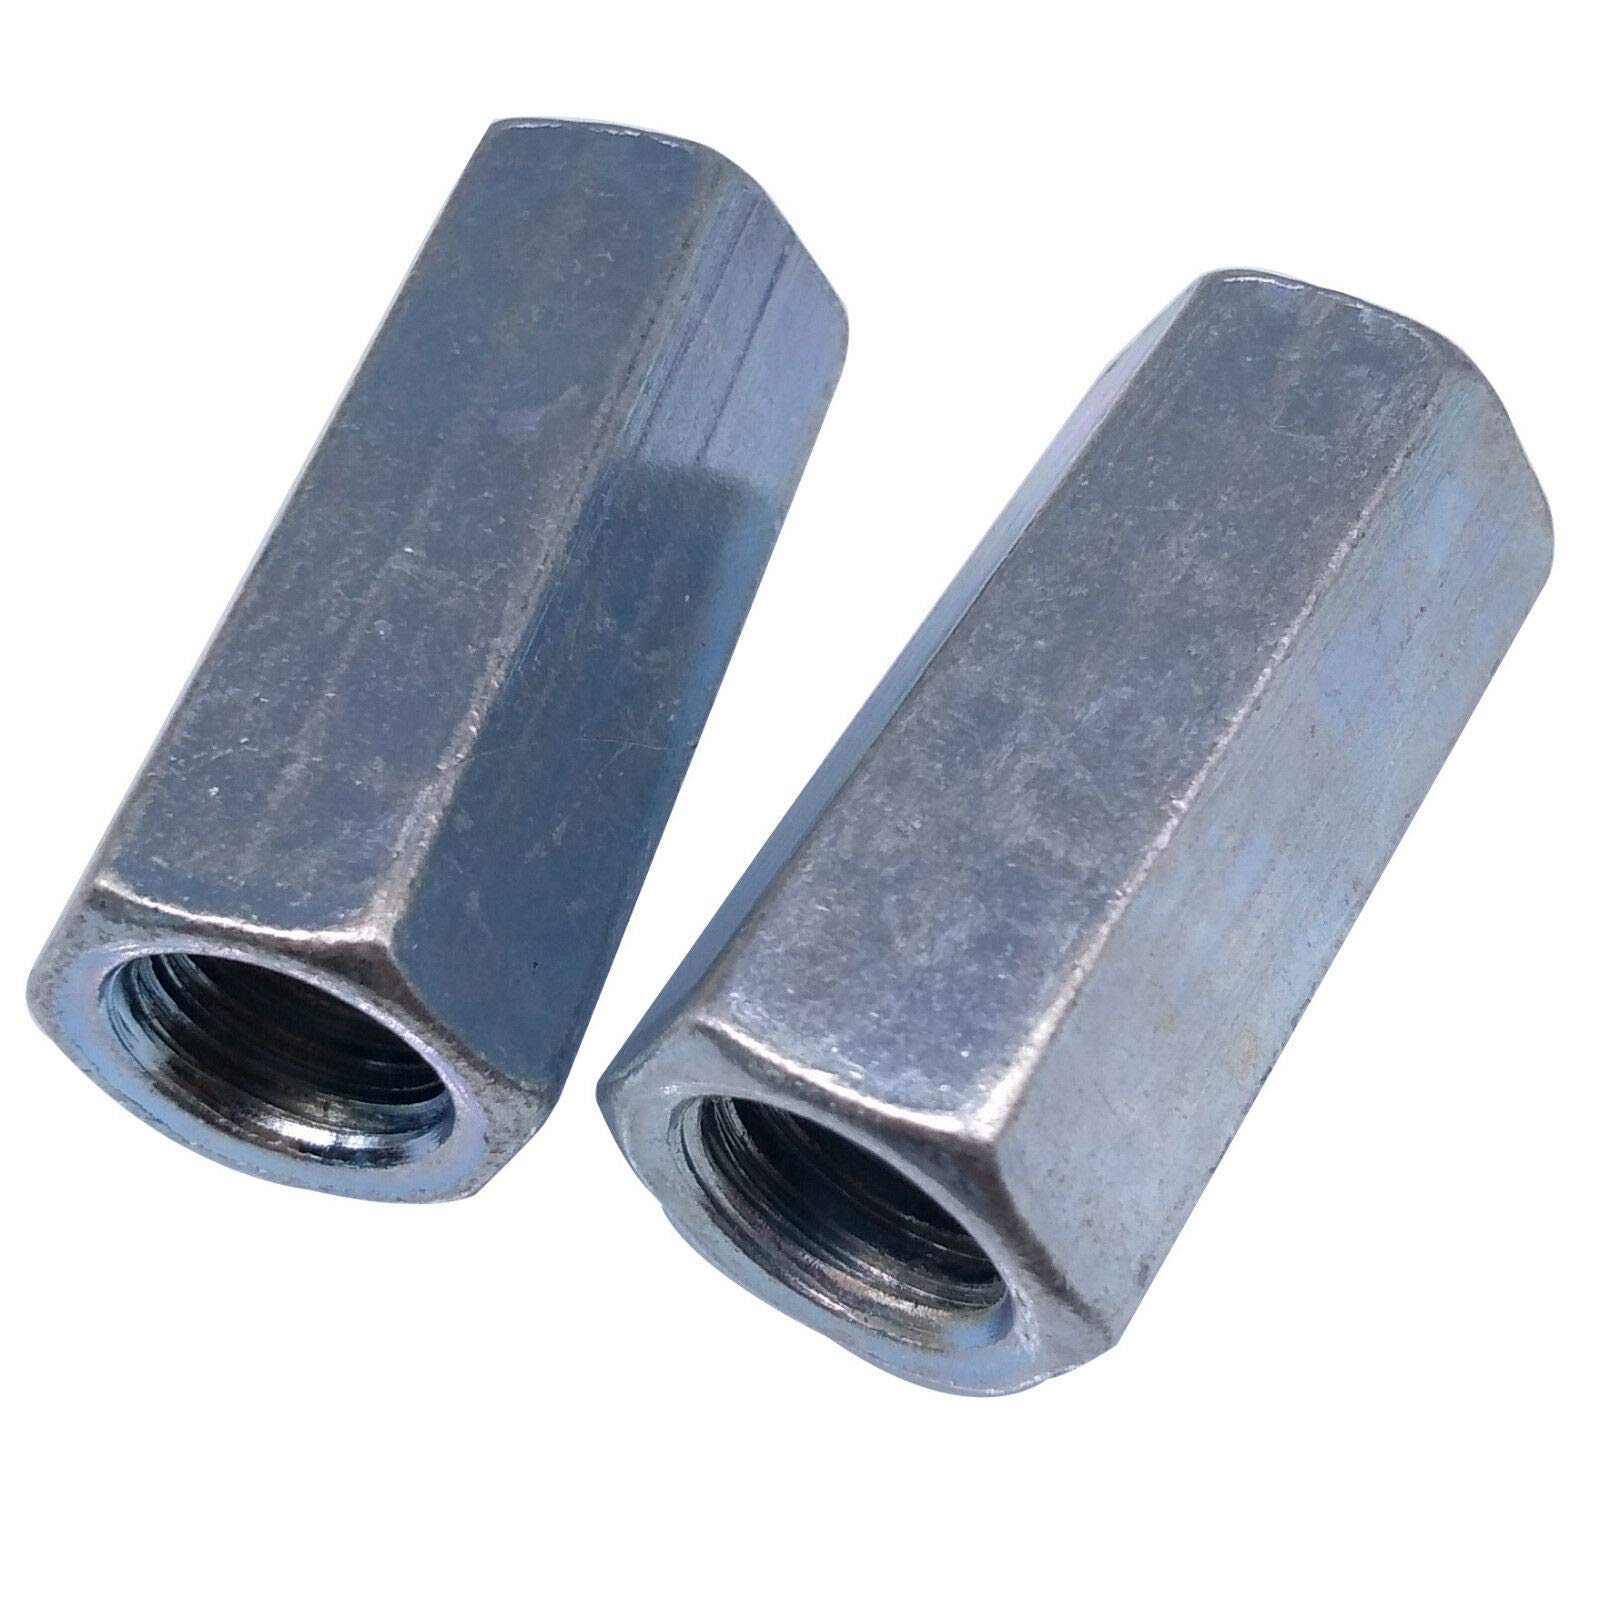 ees.Long Rod Coupling Hex Nut Connector Zinc Plated M16 x 2 x 49mm Stock 2pcs